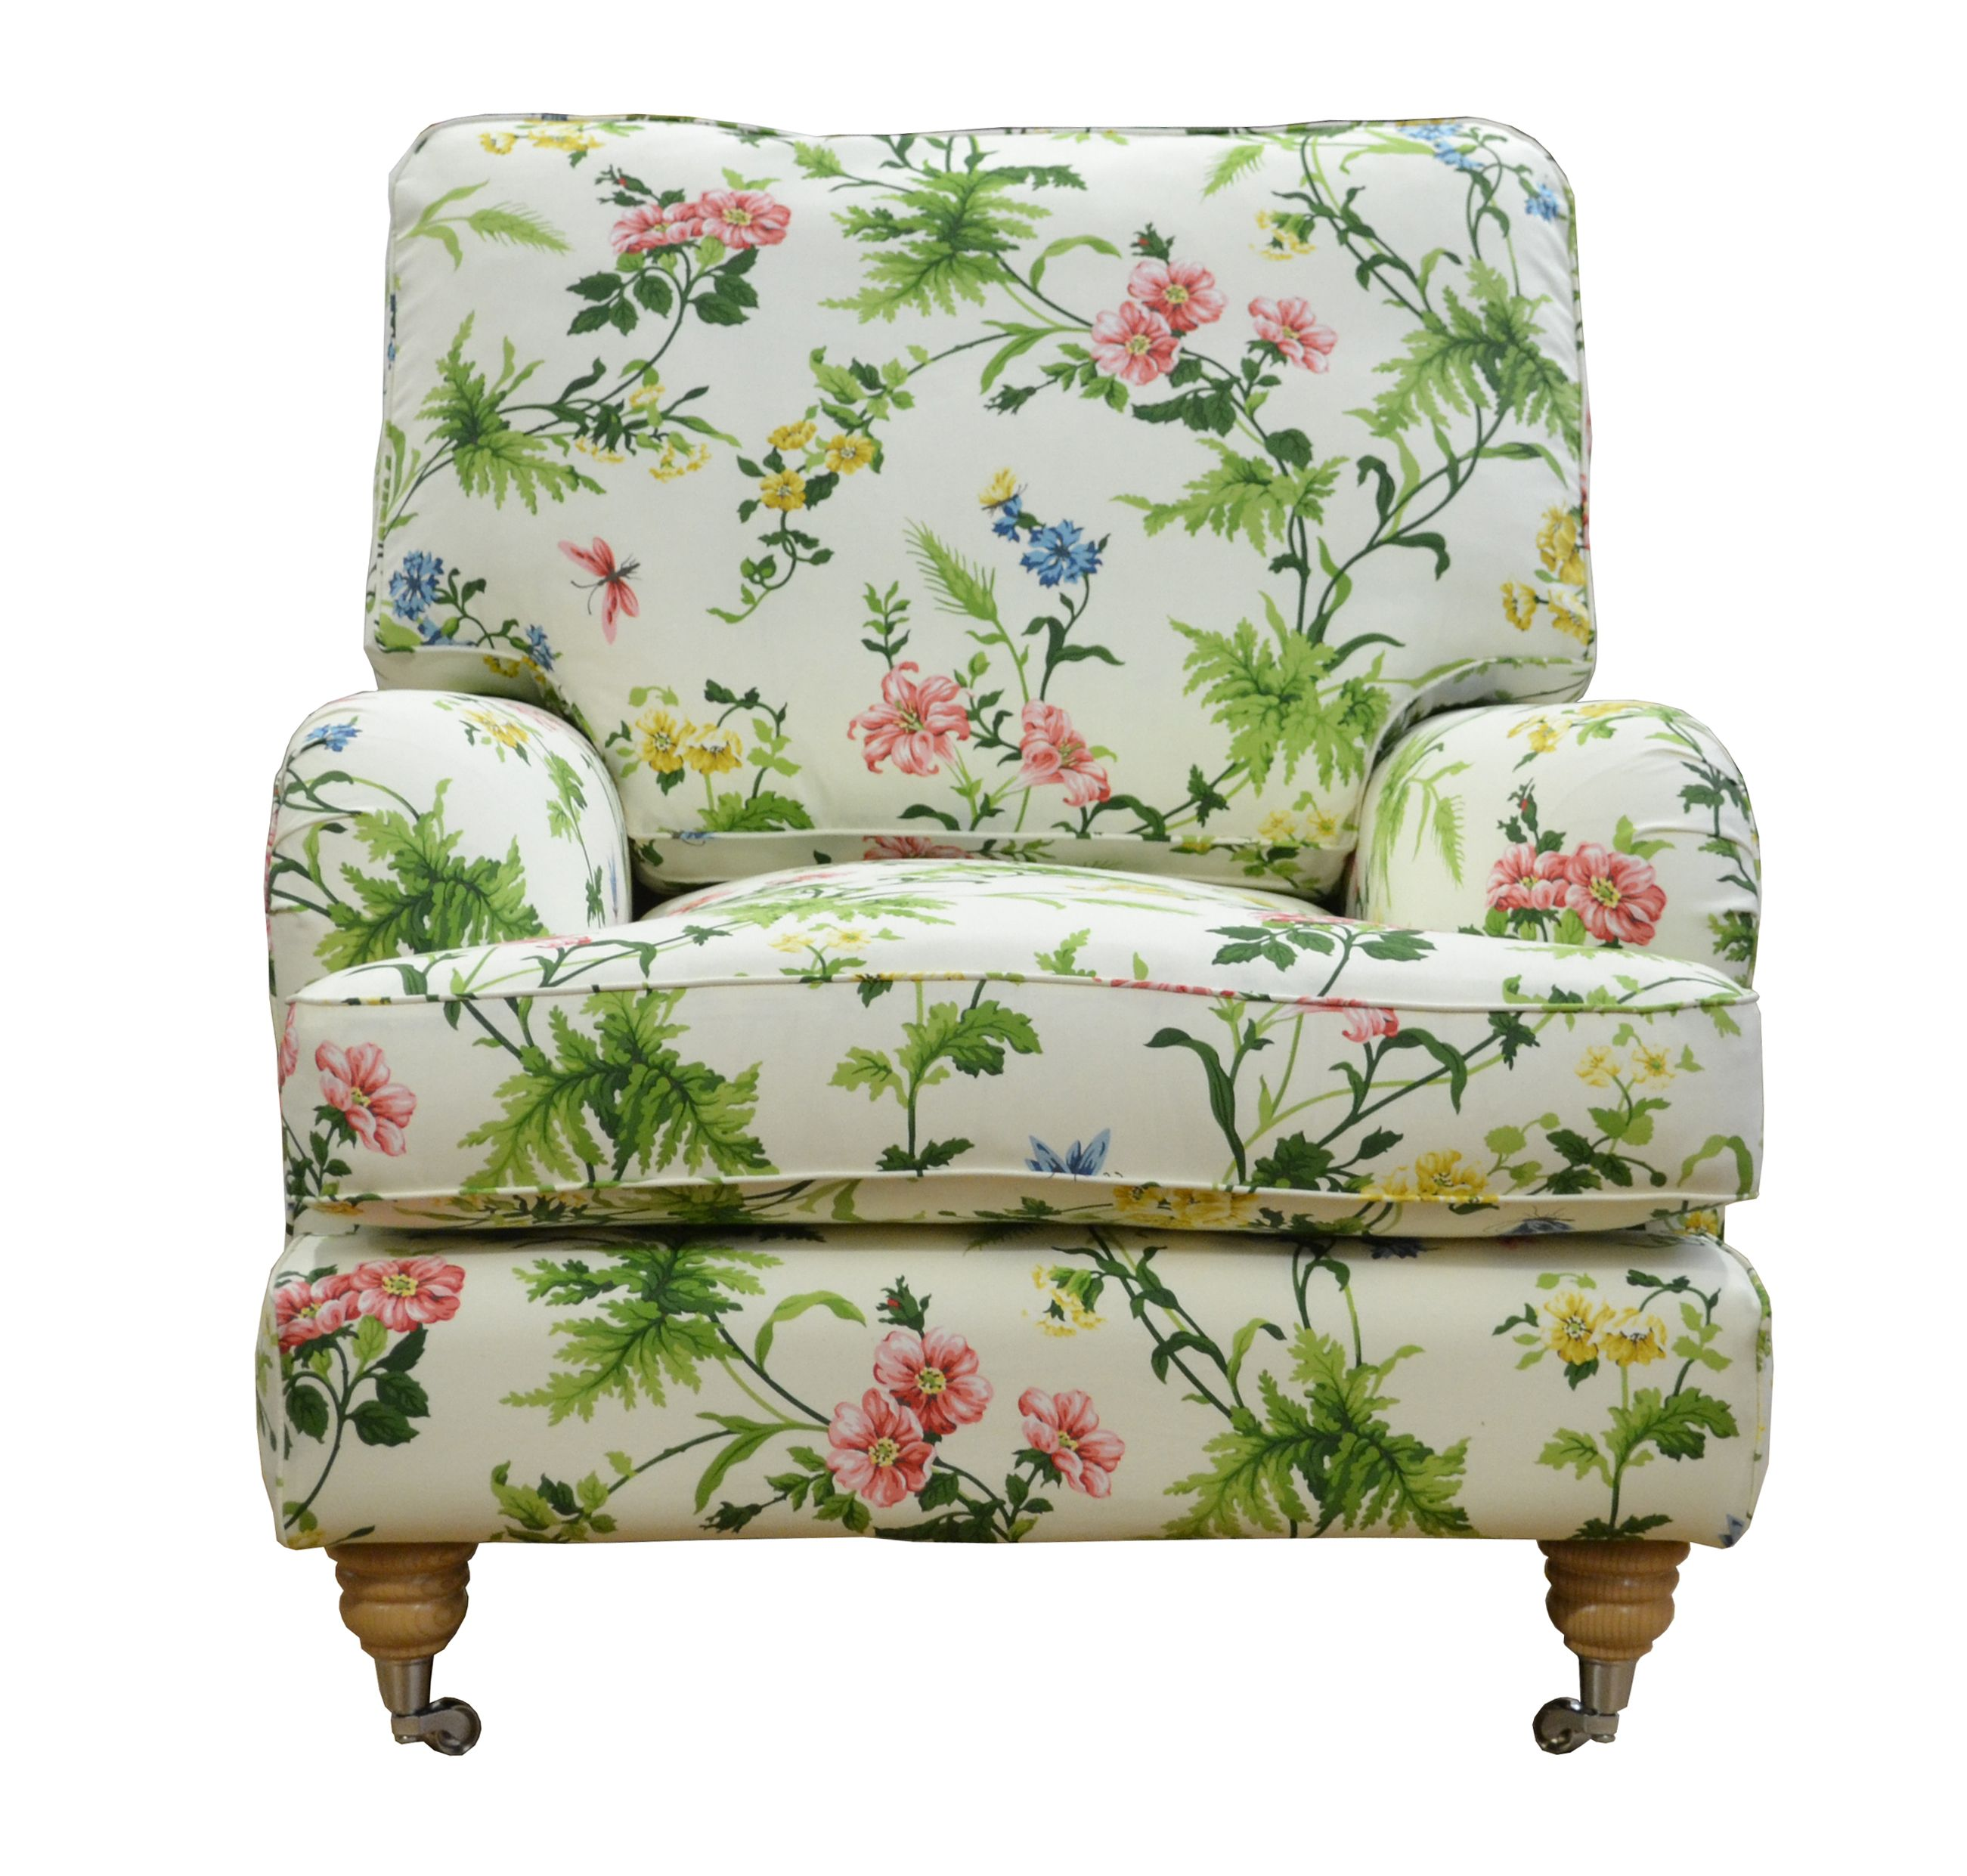 Be inspired by a fresh Botanical Print like the one on ...